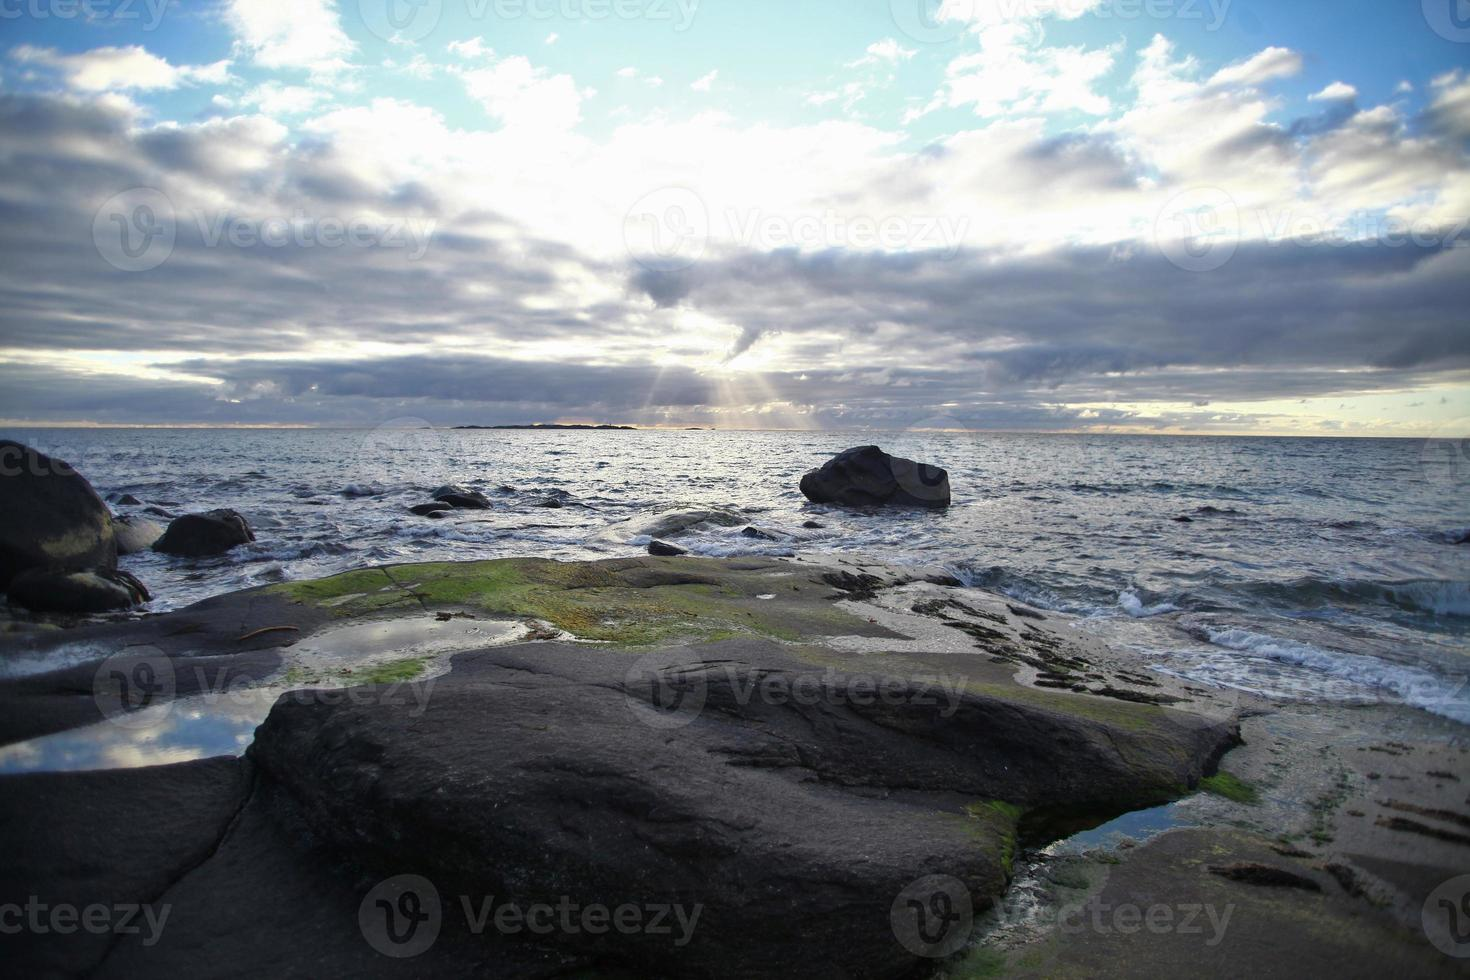 Stony beach photo